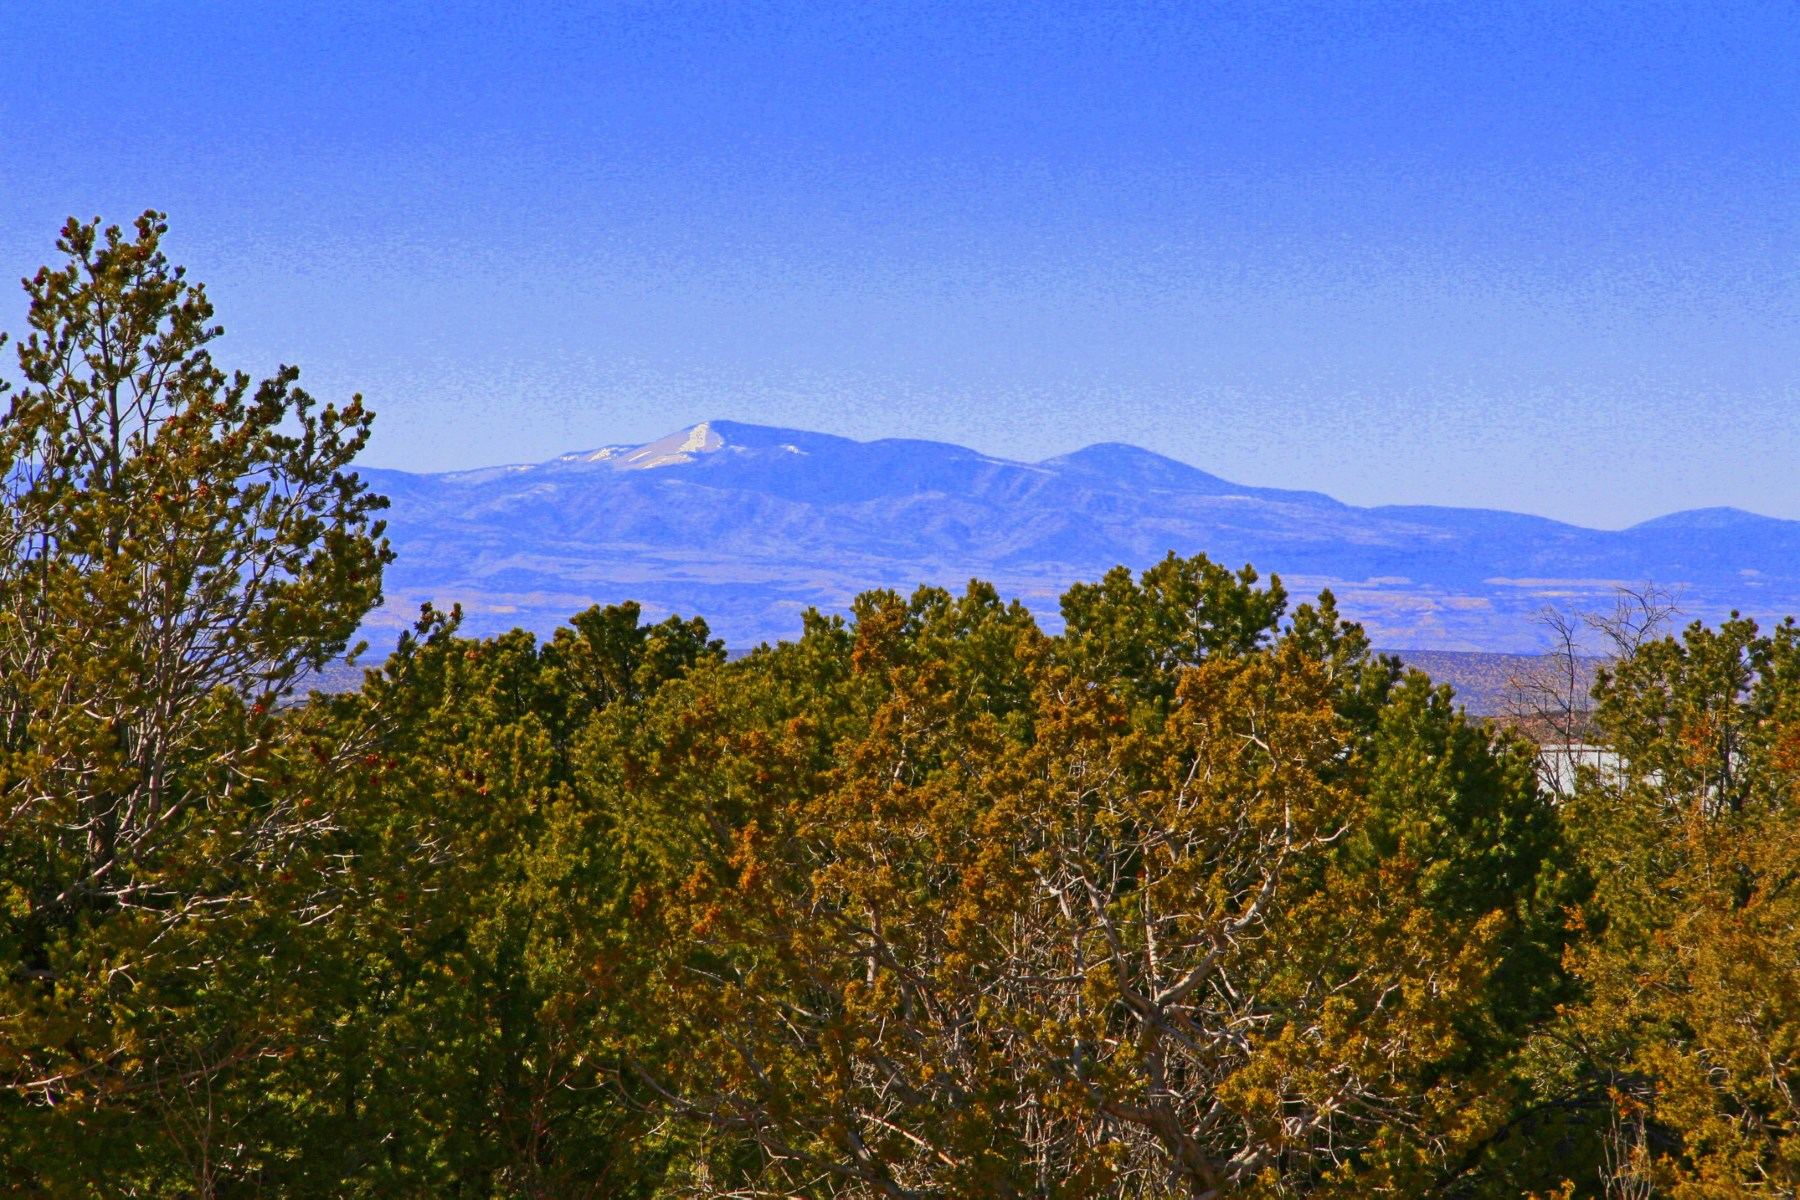 Land for Sale at Brownell Howland Road, Tract 8-A1, 8-A2 - Brownell Howland Road, Tract 8-A1, 8-A2 And 8-B Santa Fe, New Mexico, 87501 United States